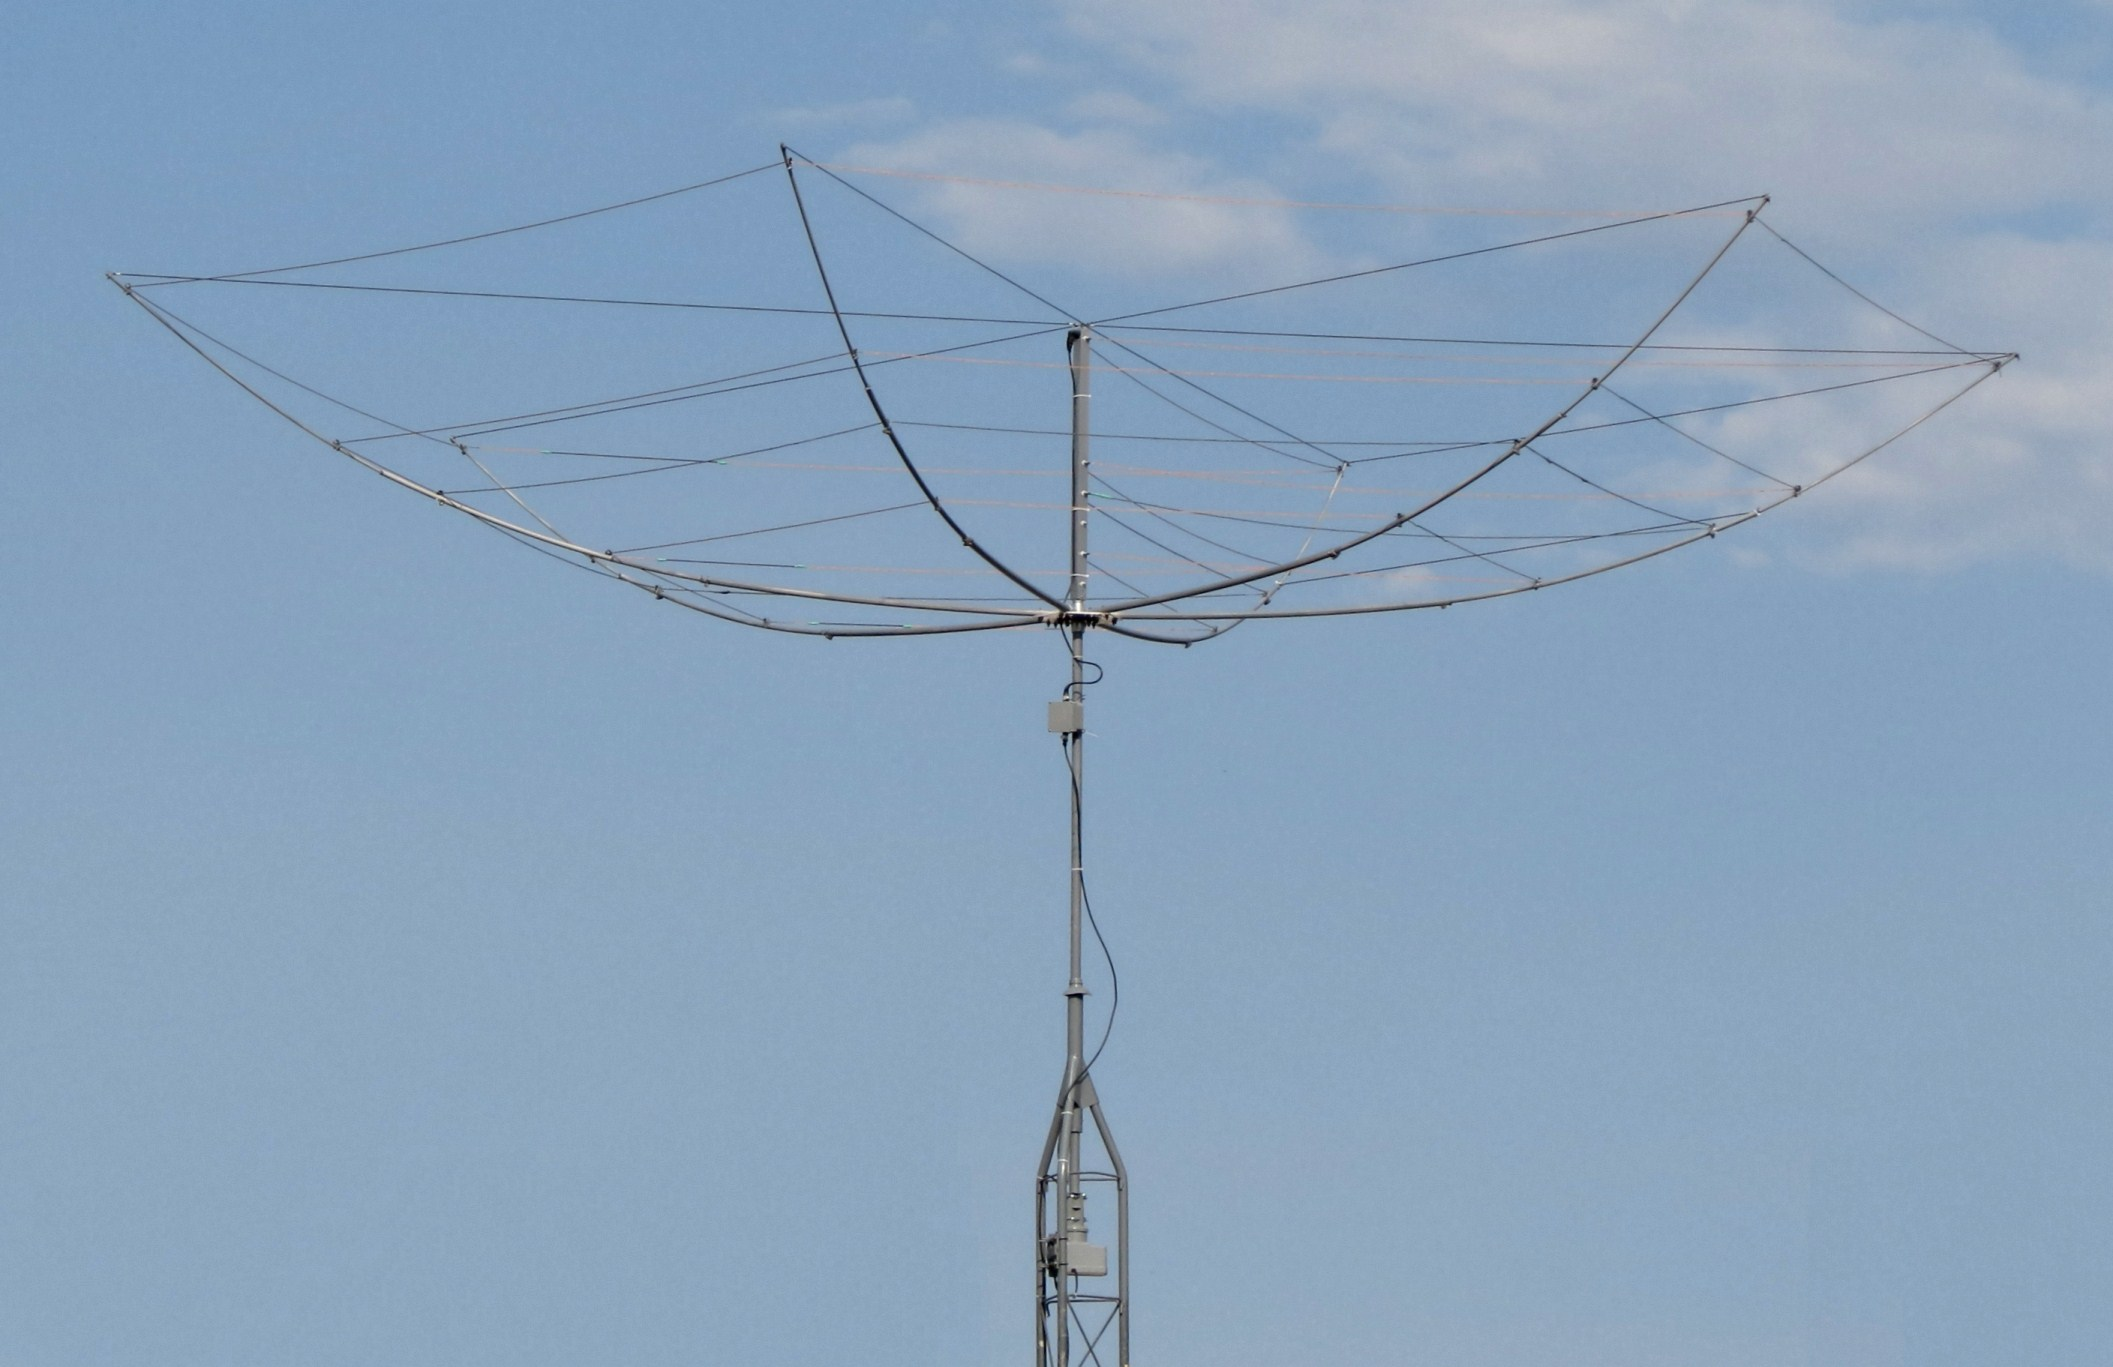 Amateur Radio Hf Antennas 40